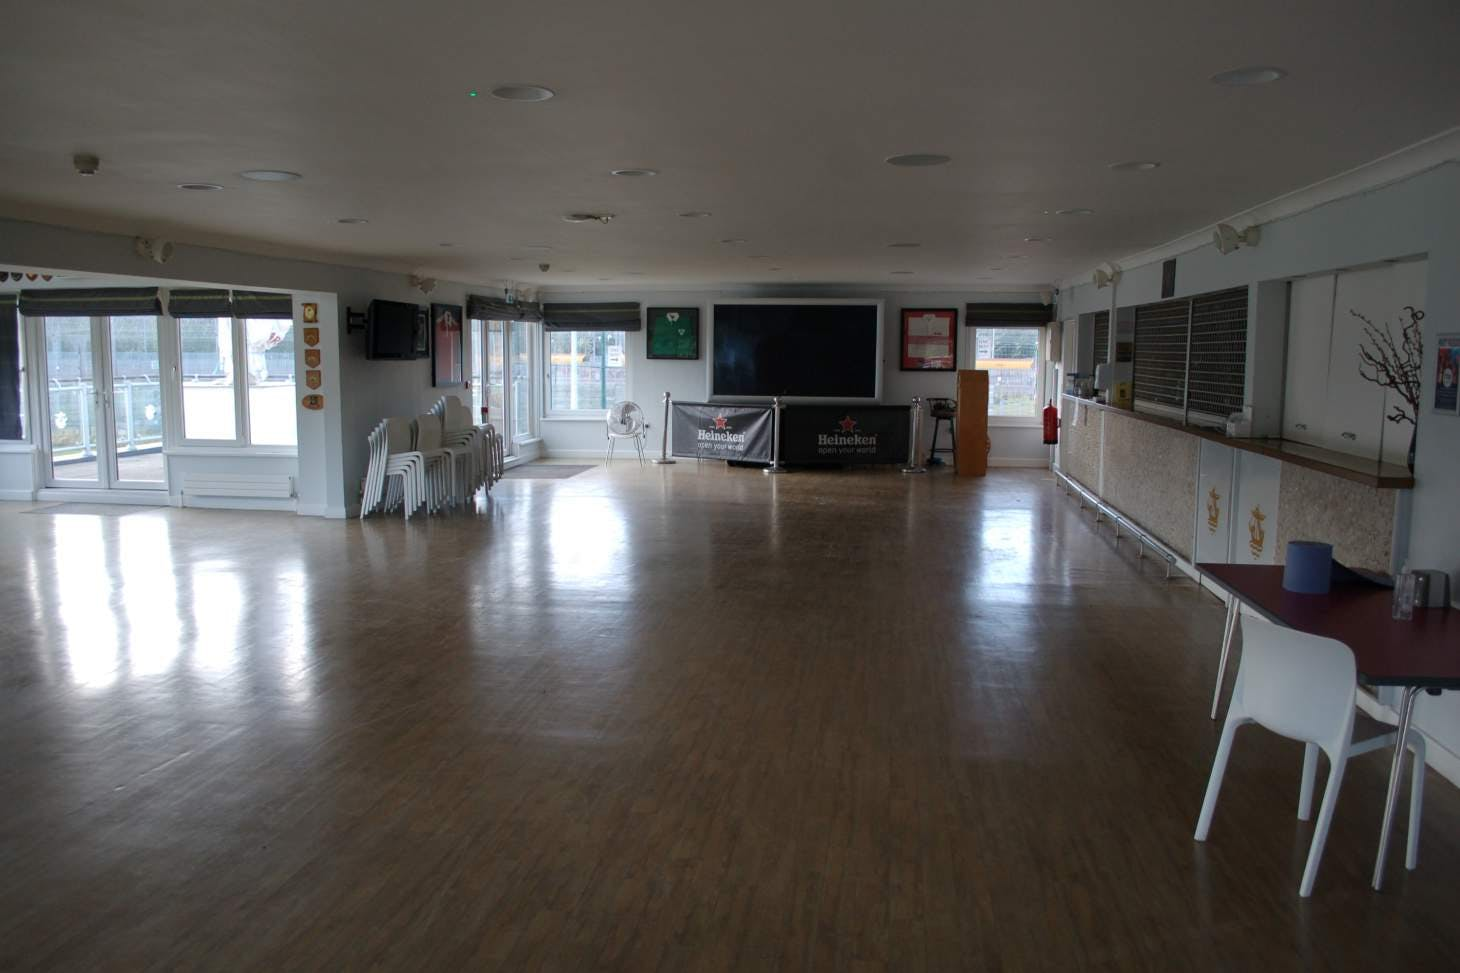 Folkestone Rugby Club Clubhouse   Full day hire space hire